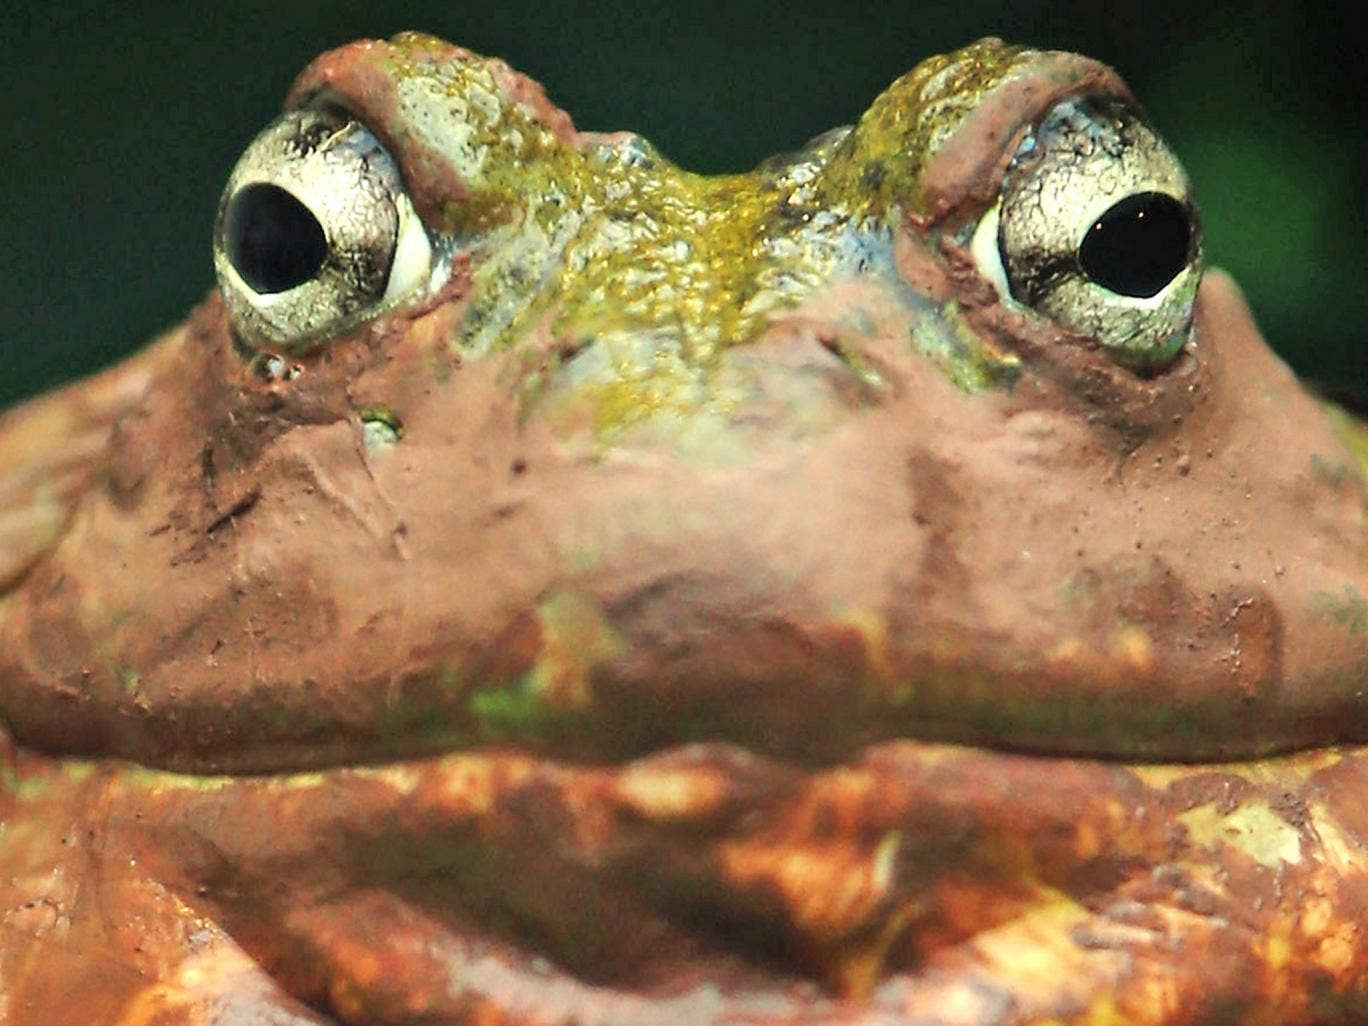 Paul Marinaccio said he felt like a prisoner in his own home. 'I can't get in my garage because of the frogs. They're right in front of the damn door,' the road construction company owner said